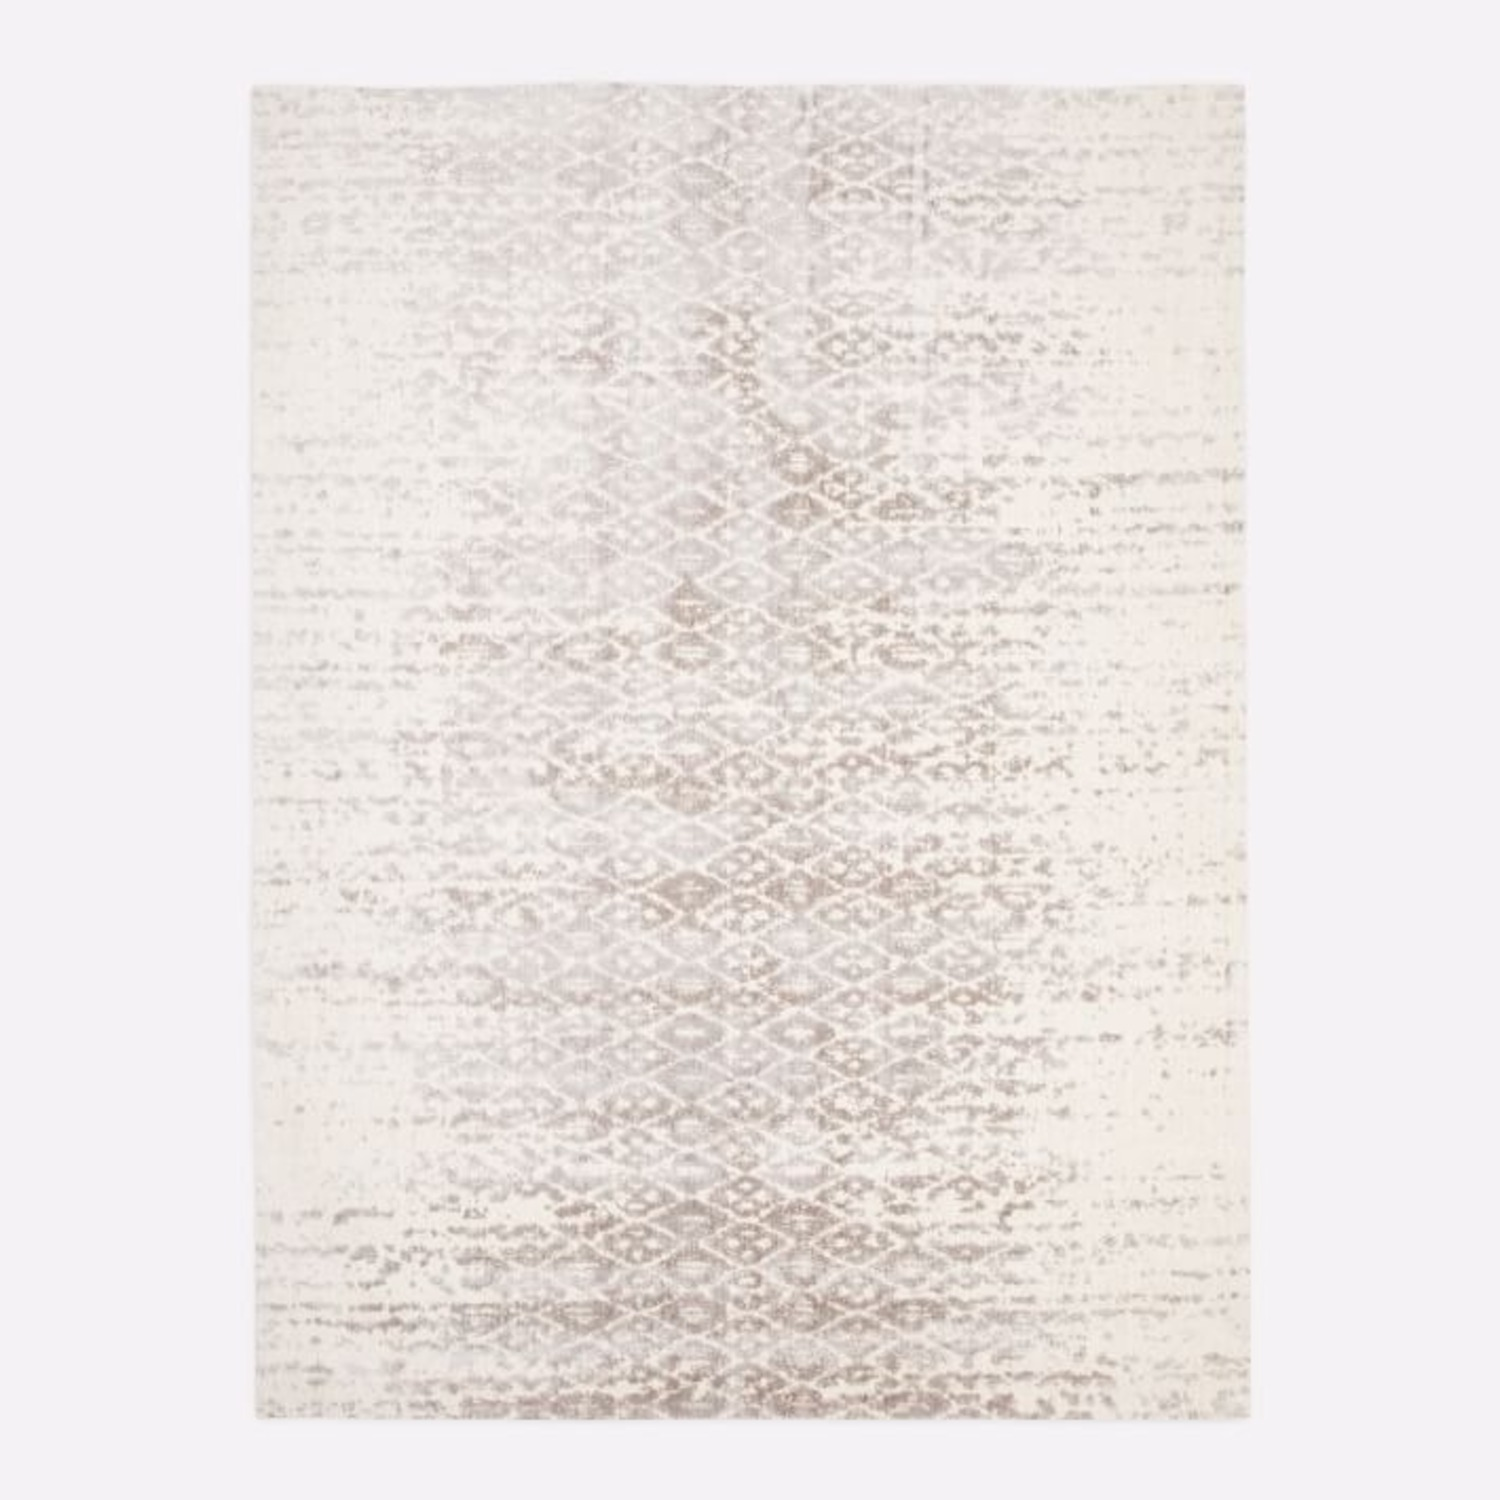 West Elm Foil Diamonds Rug - image-1